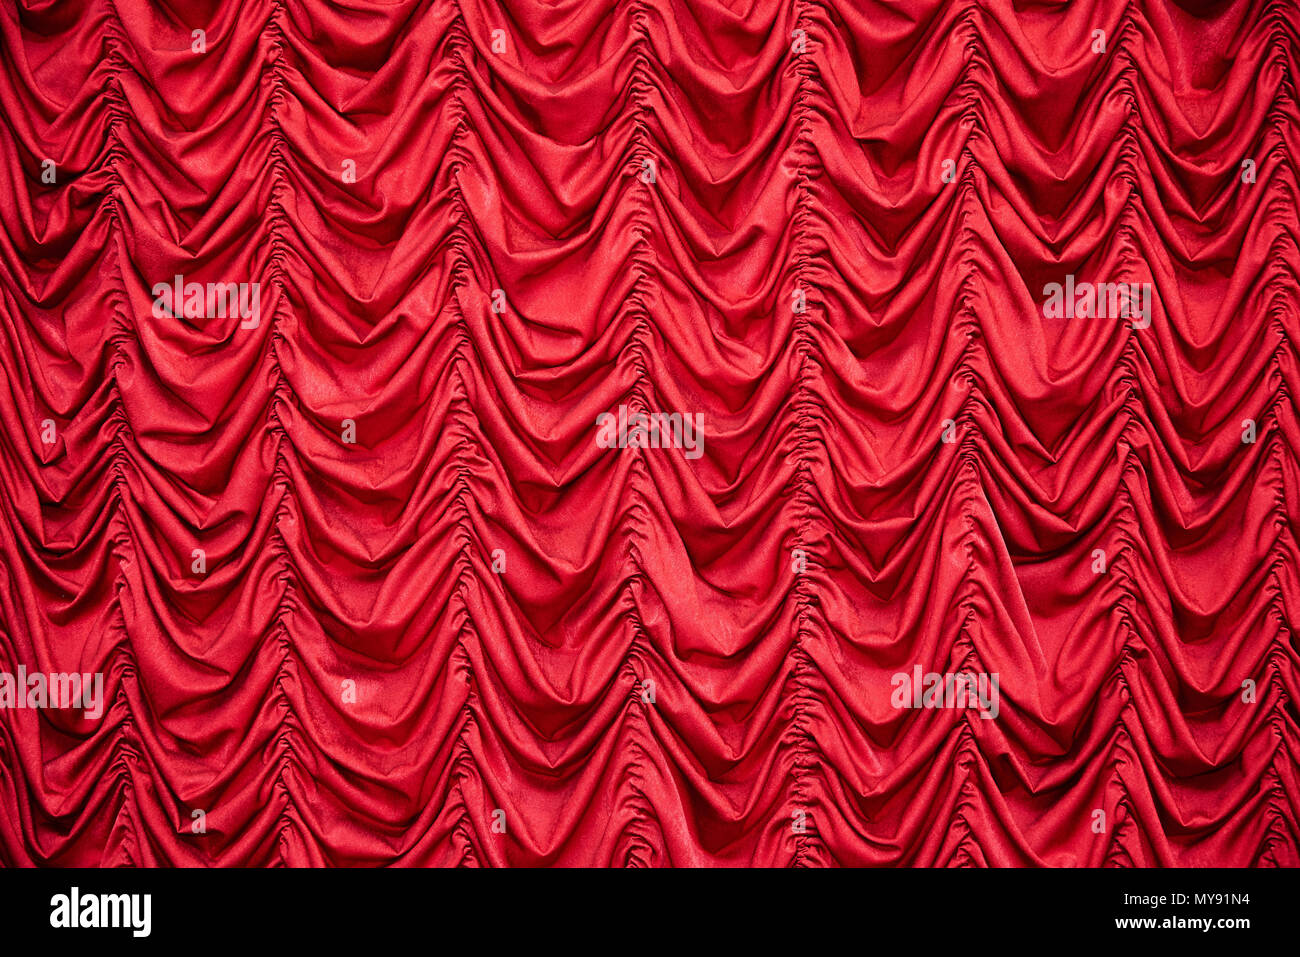 Red draped curtains - Stock Image